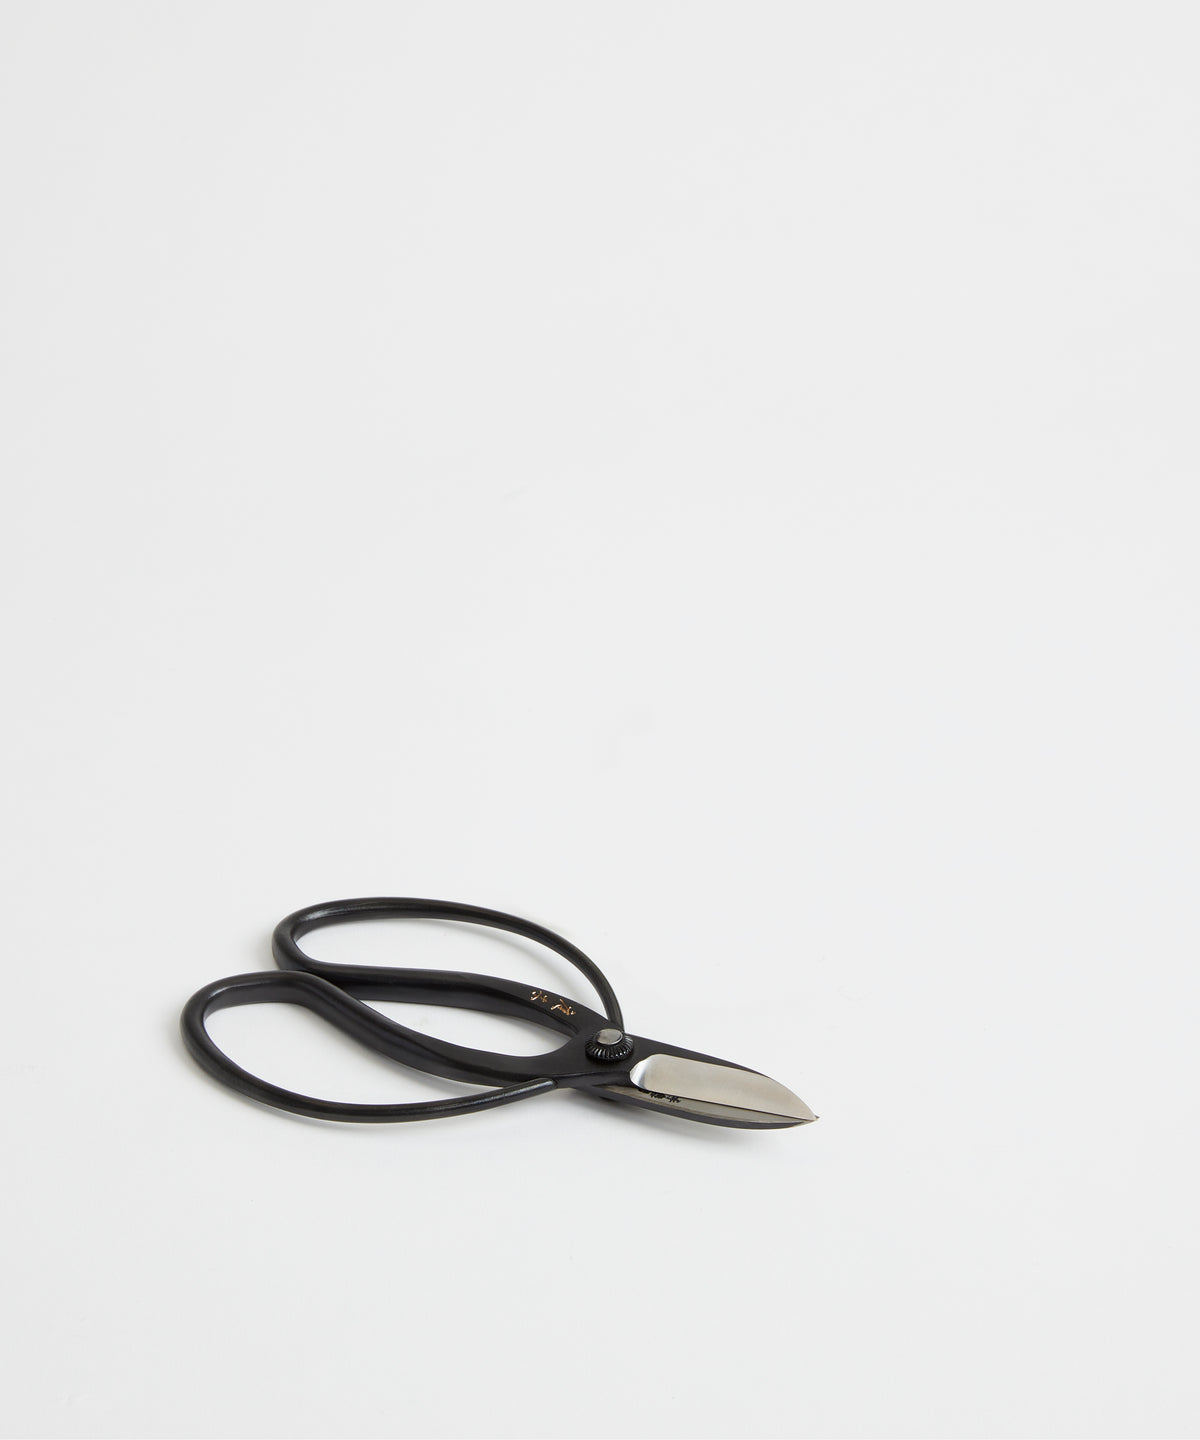 Carbon Steel Japanese Garden Scissors